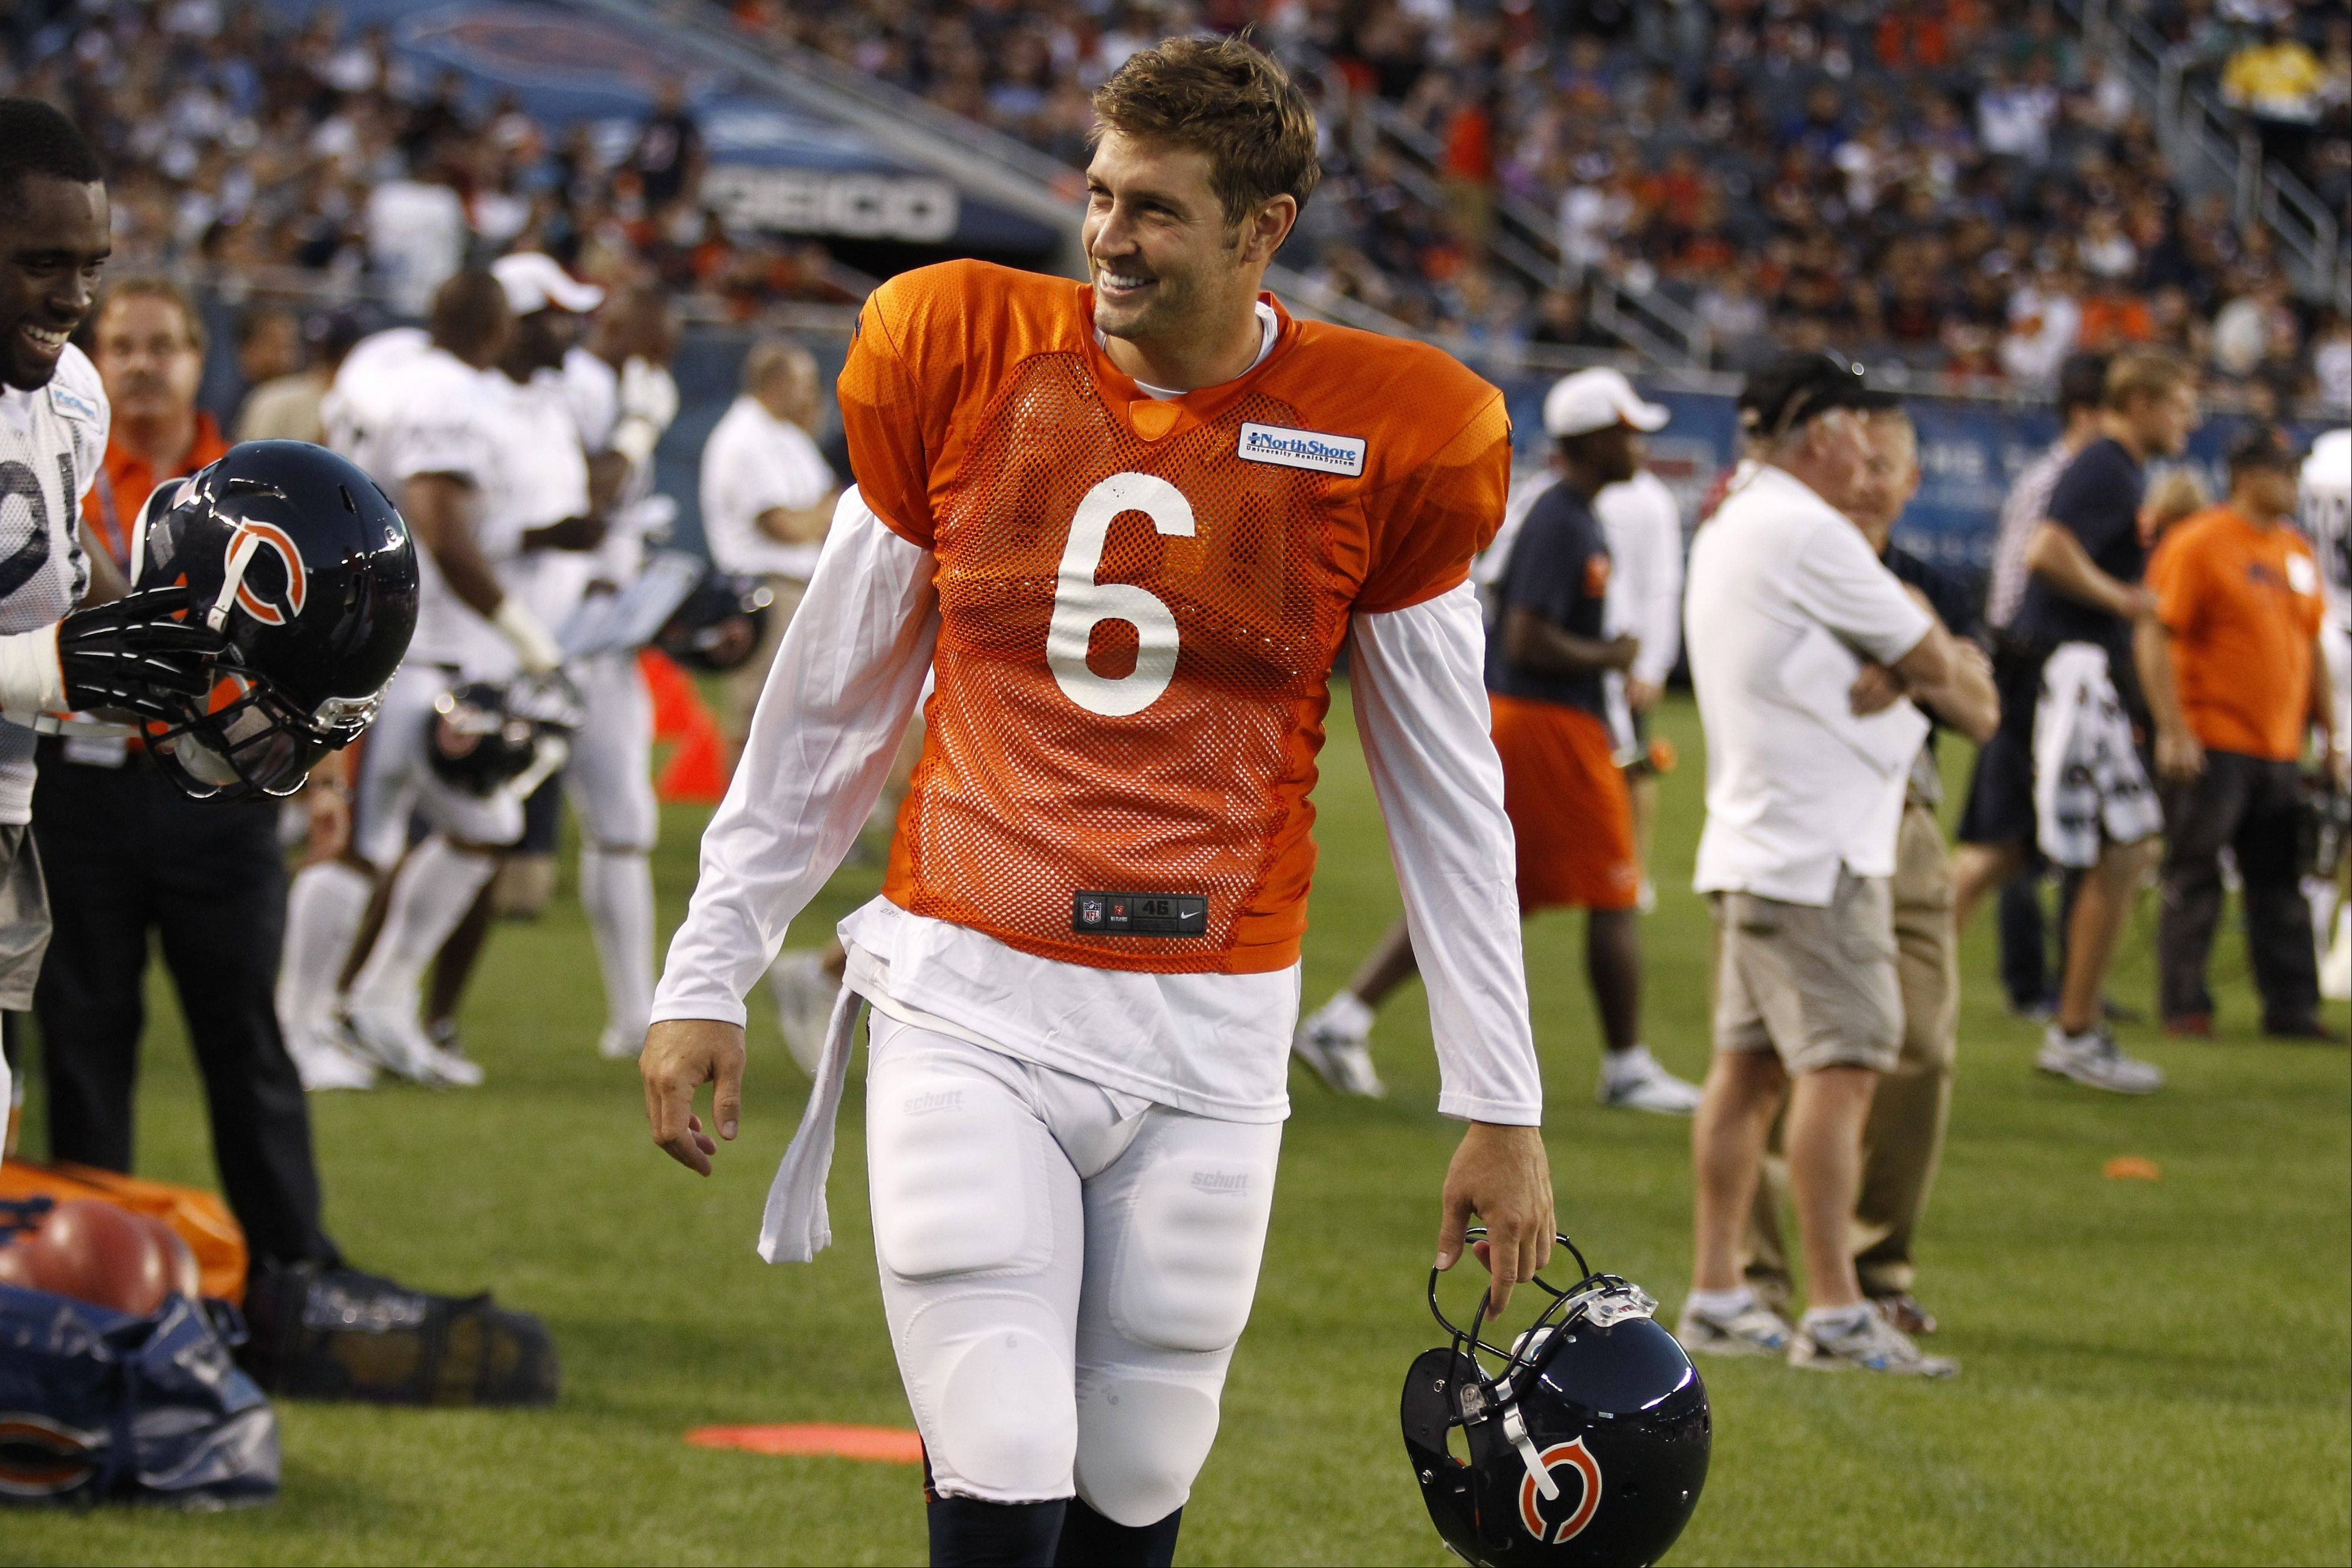 Chicago Bears quarterback Jay Cutler during NFL football training camp at Soldier Field in Chicago, Saturday, Aug 3, 2013.